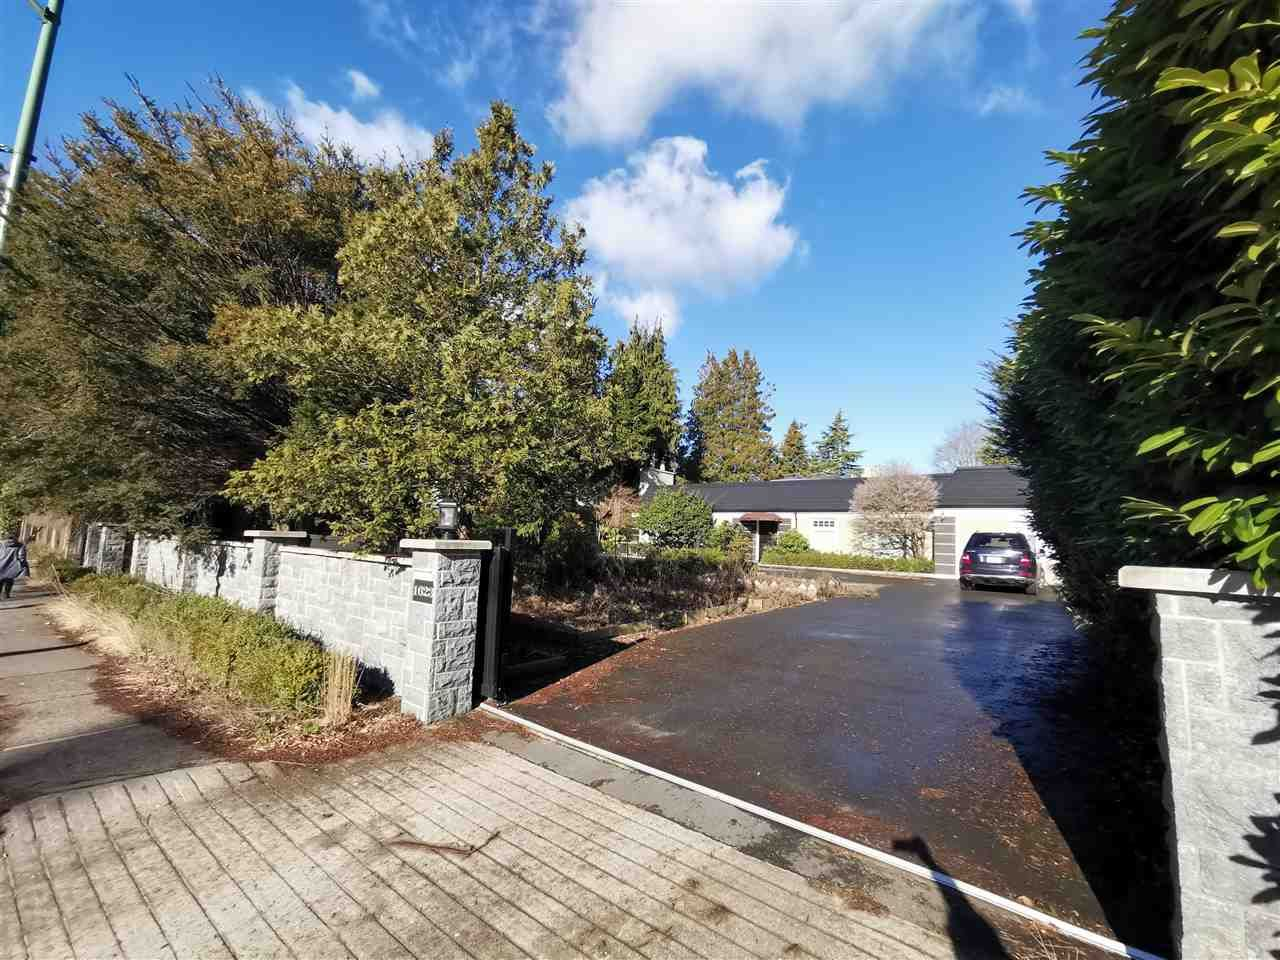 Main Photo: 1623 W 41ST Avenue in Vancouver: Shaughnessy House for sale (Vancouver West)  : MLS®# R2535296